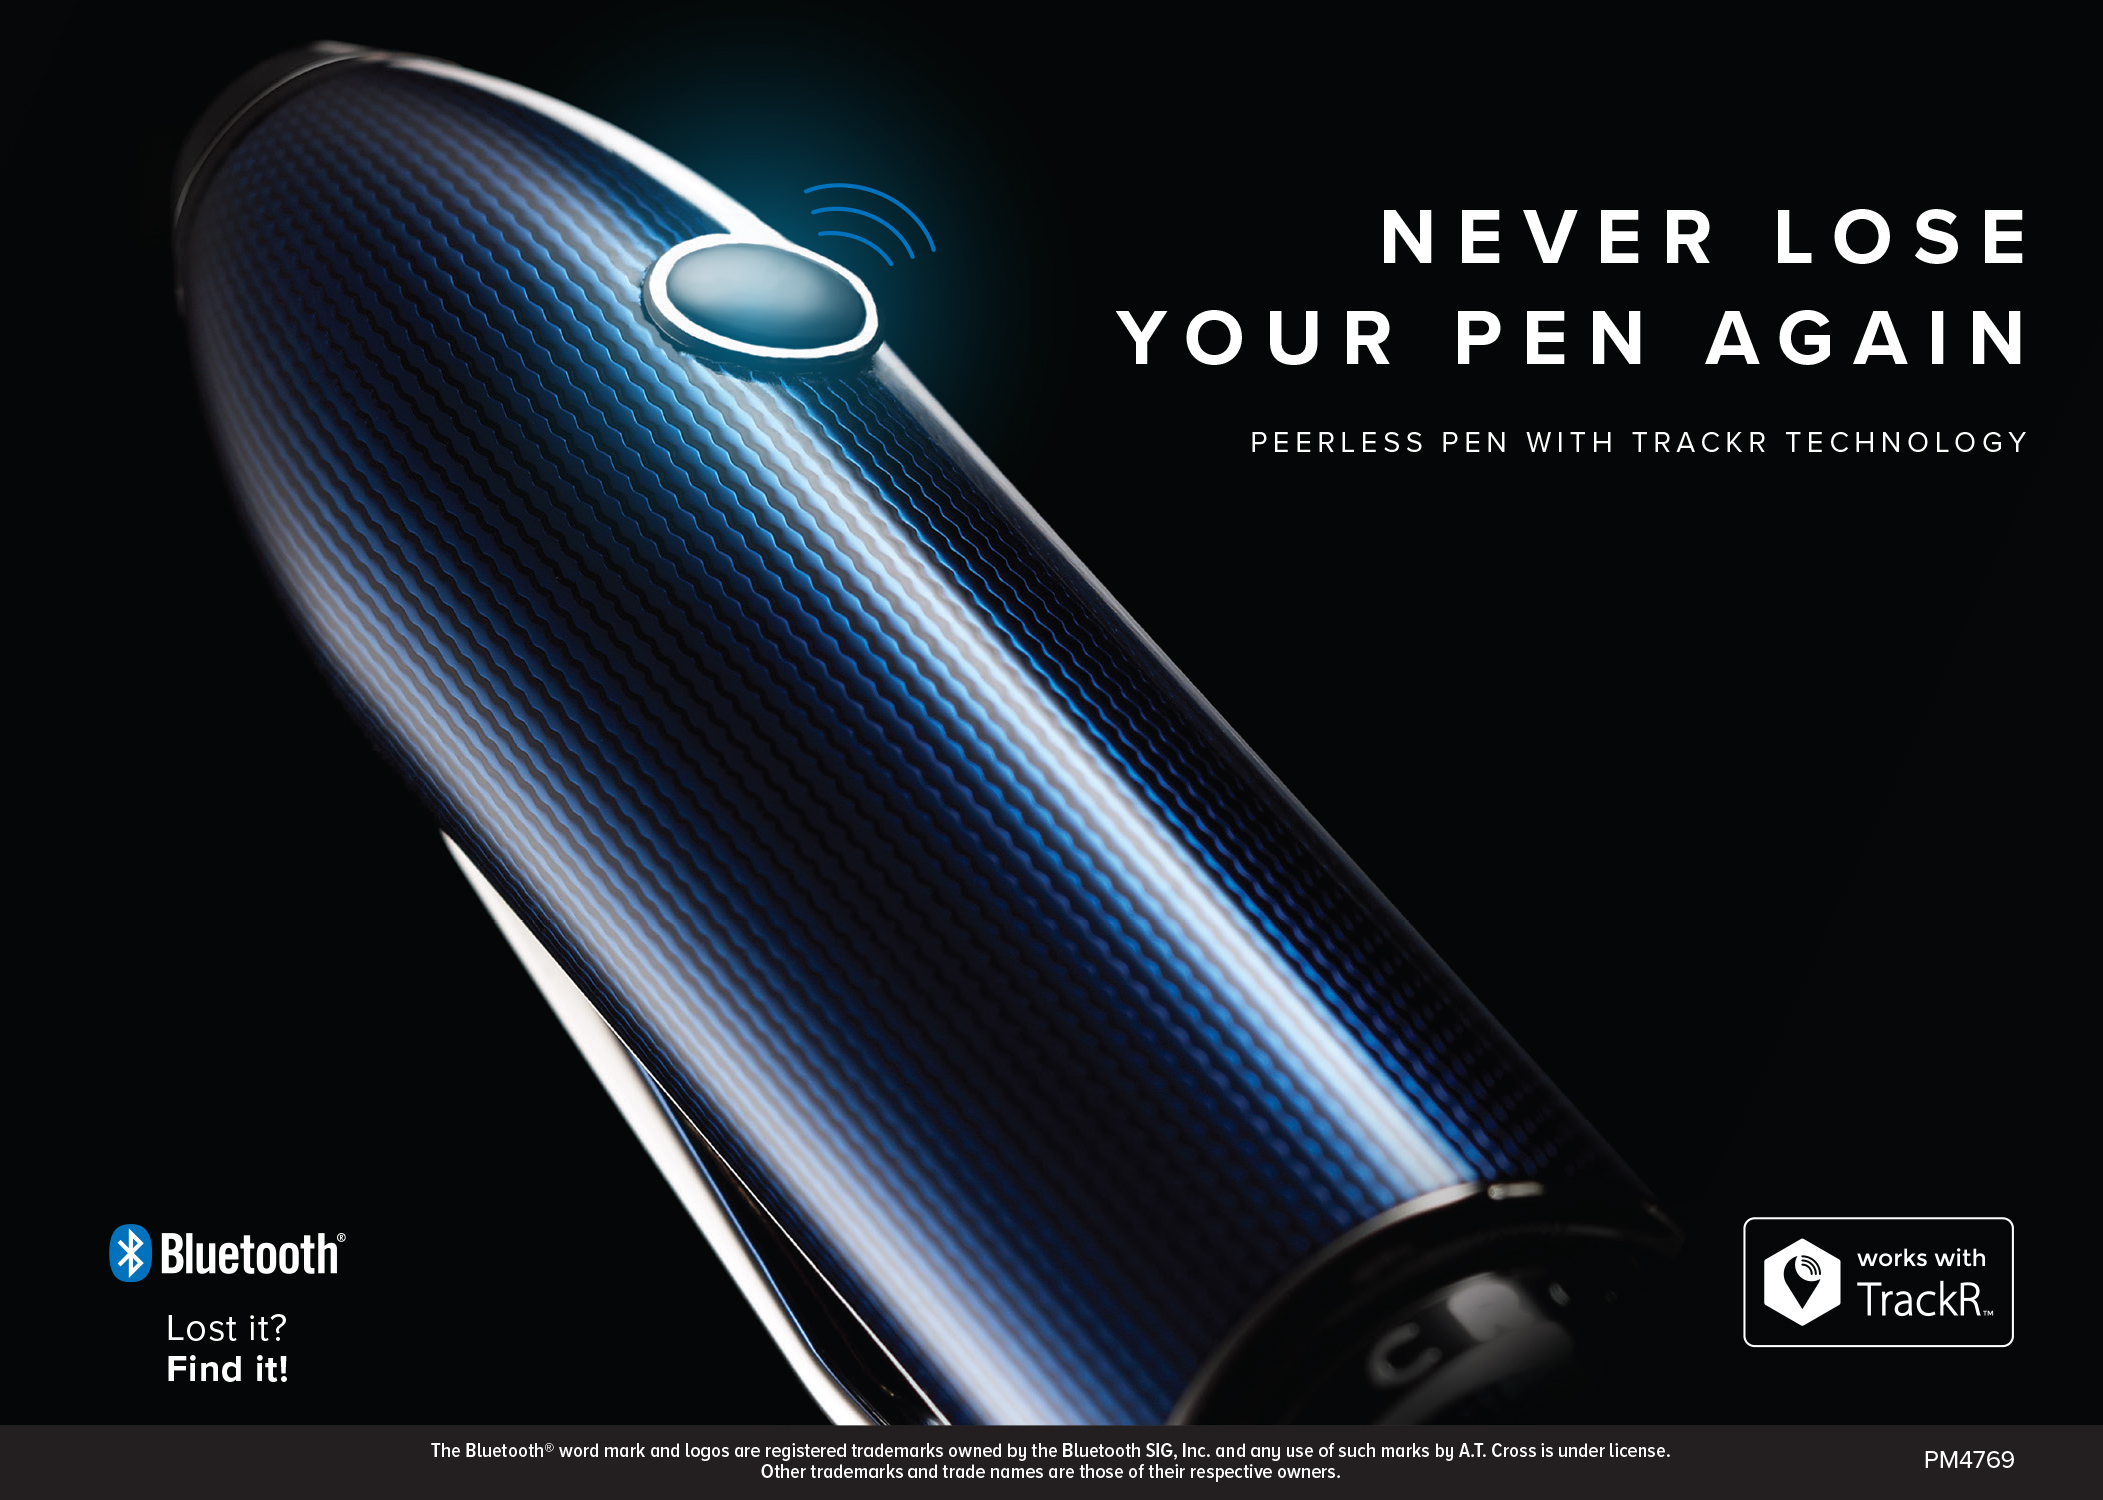 The World's First Trackable Pen